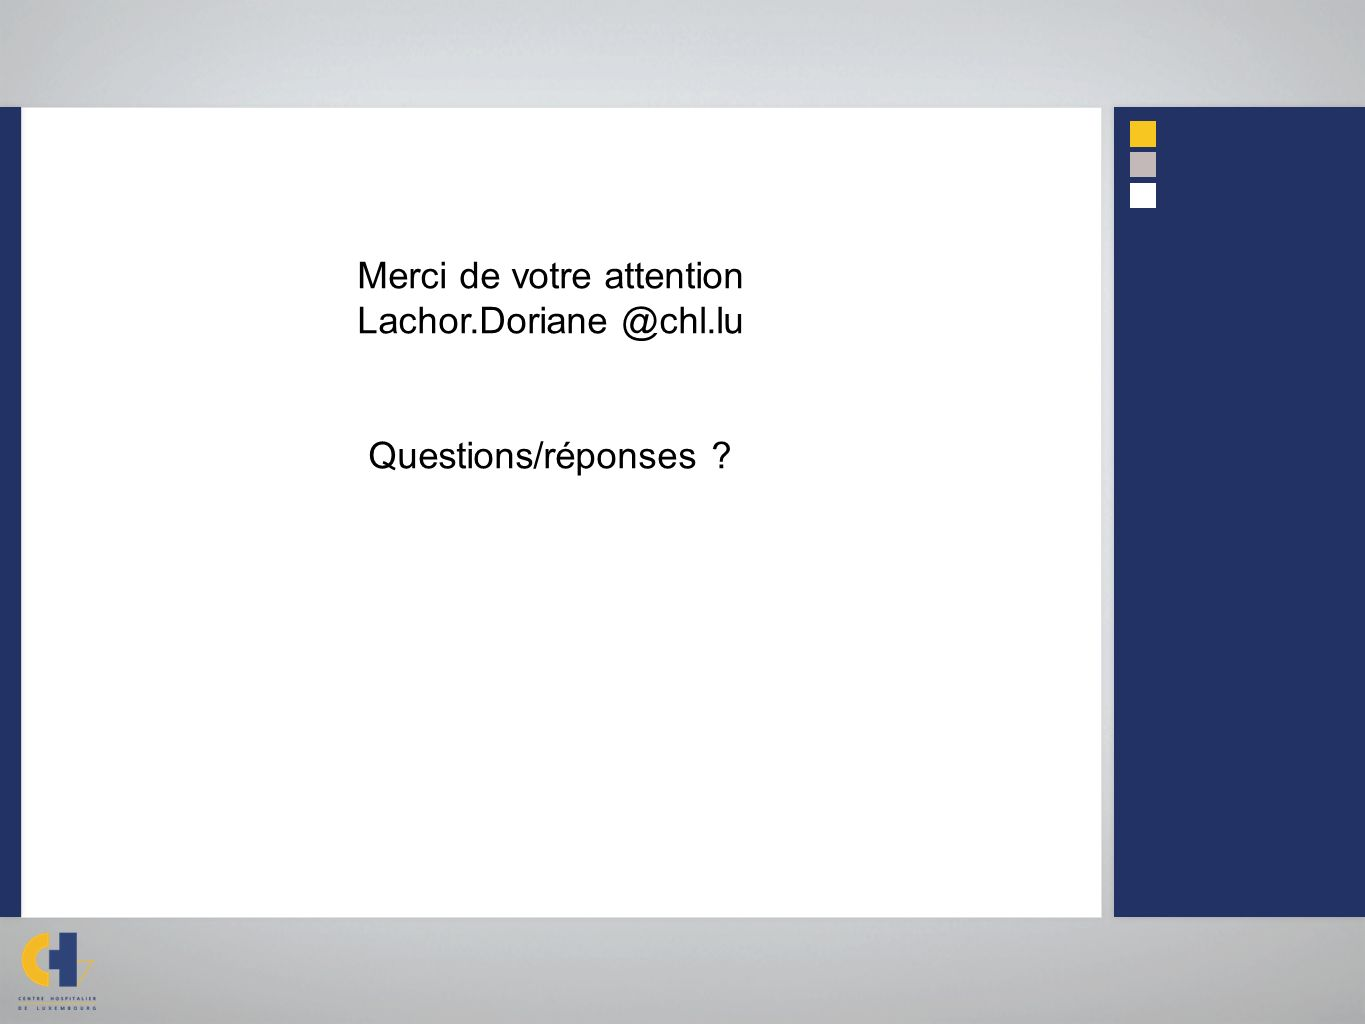 Merci de votre attention Lachor.Doriane @chl.lu Questions/réponses ?